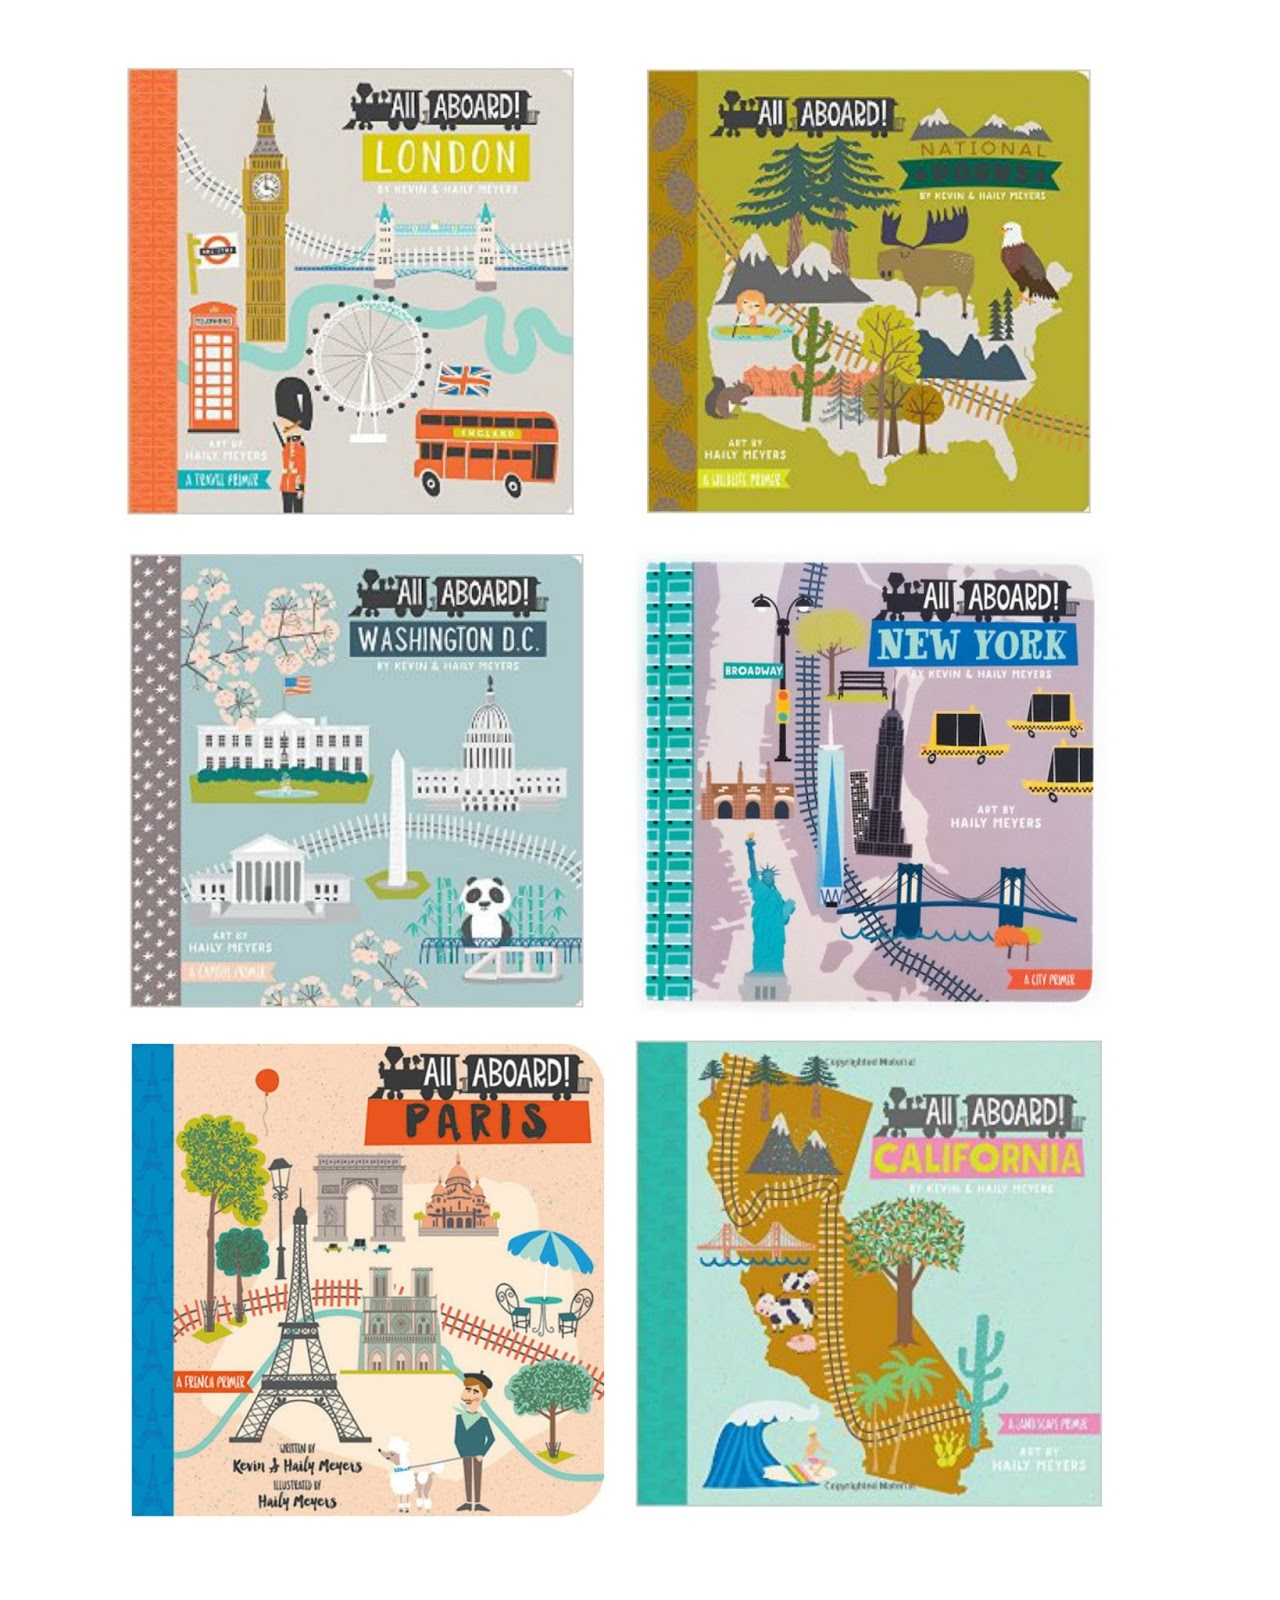 mamasVIB | V. I. BOOKCLUB: Travel books & guides that transport kids from the comfort of home | baby lit books | all abroad | waterstones | travel books for kids